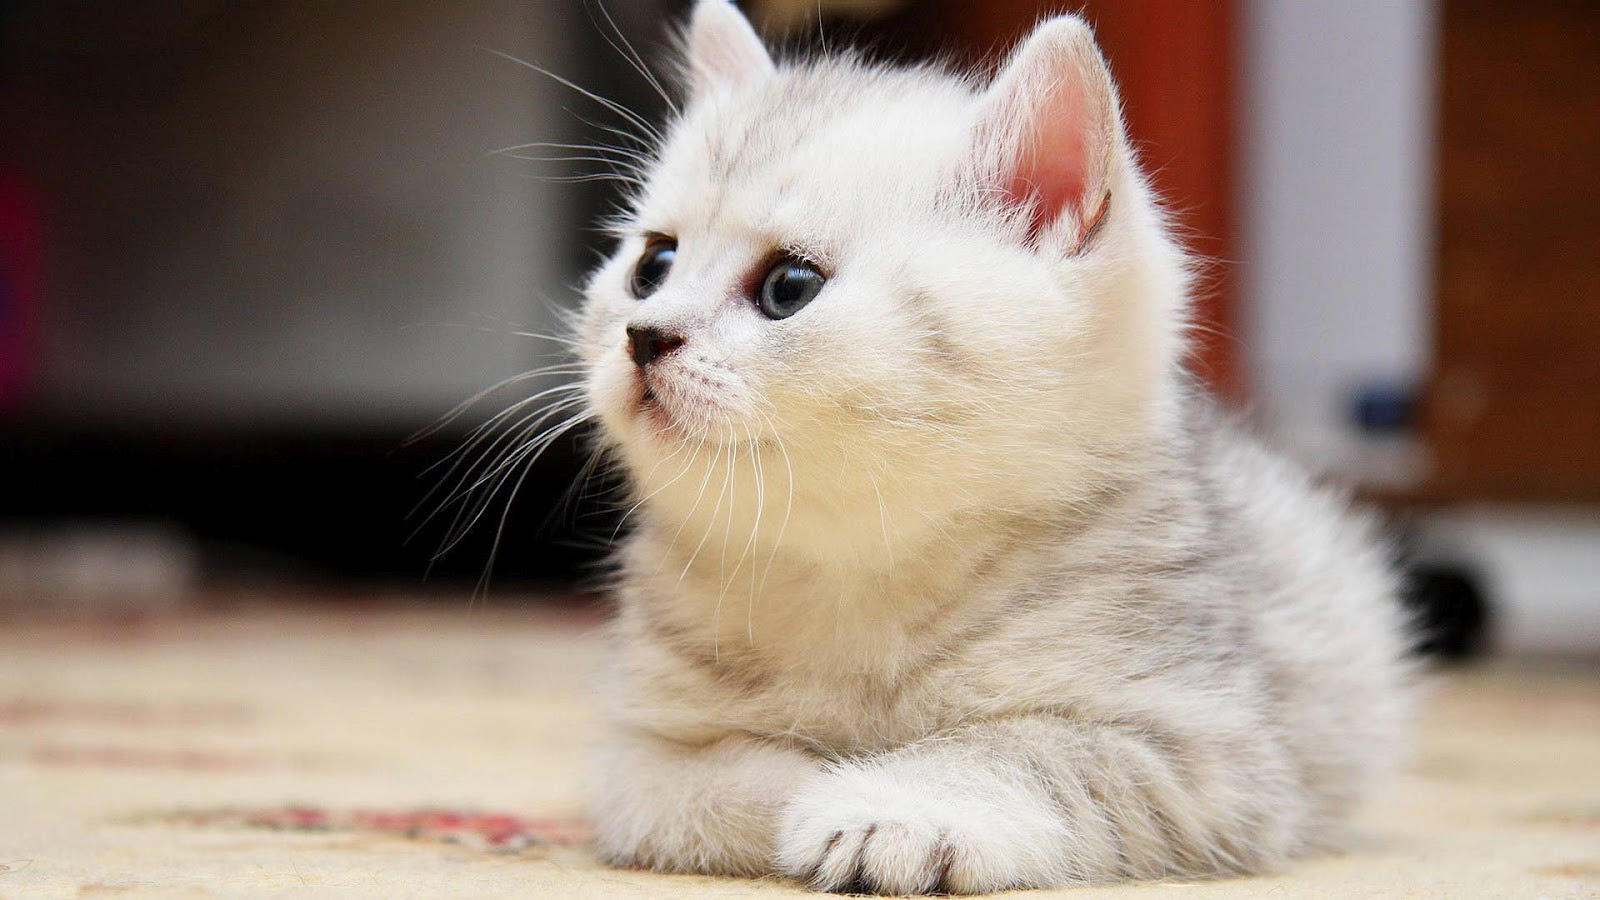 Wallpaper With A Resting White Cat Hd Cats Wallpapers Backgrounds